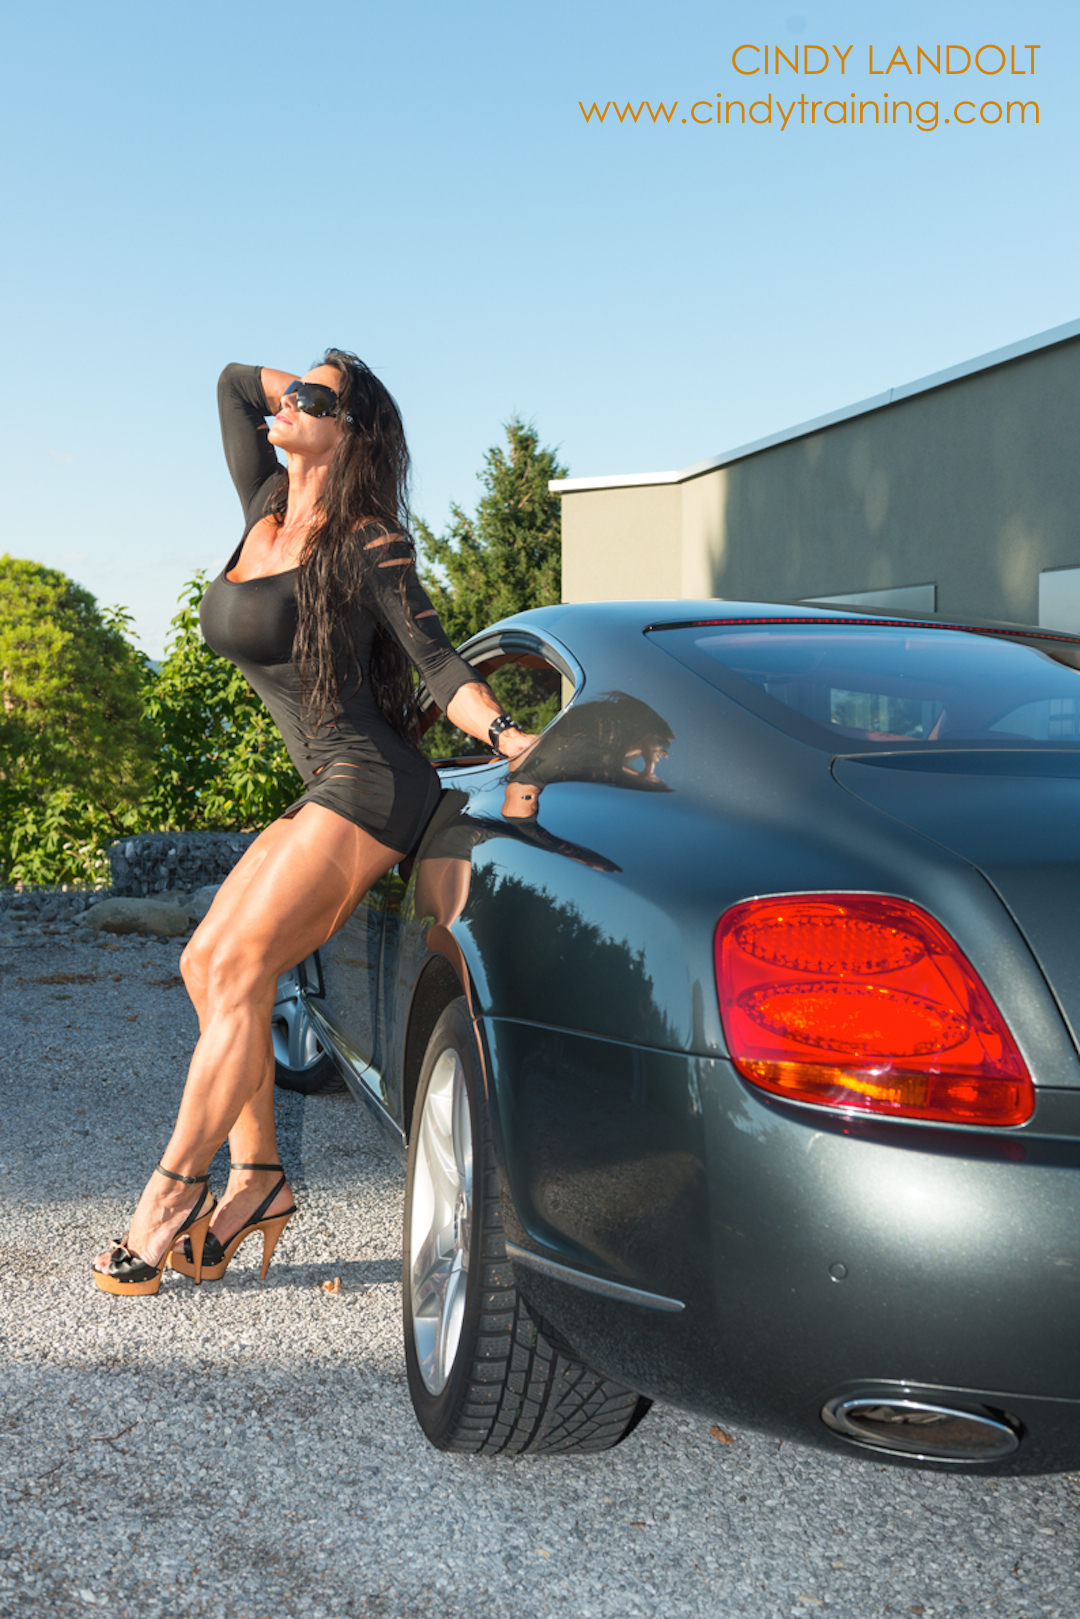 Personal-Trainer-Zurich-Cindy-Landolt-Bentley-1